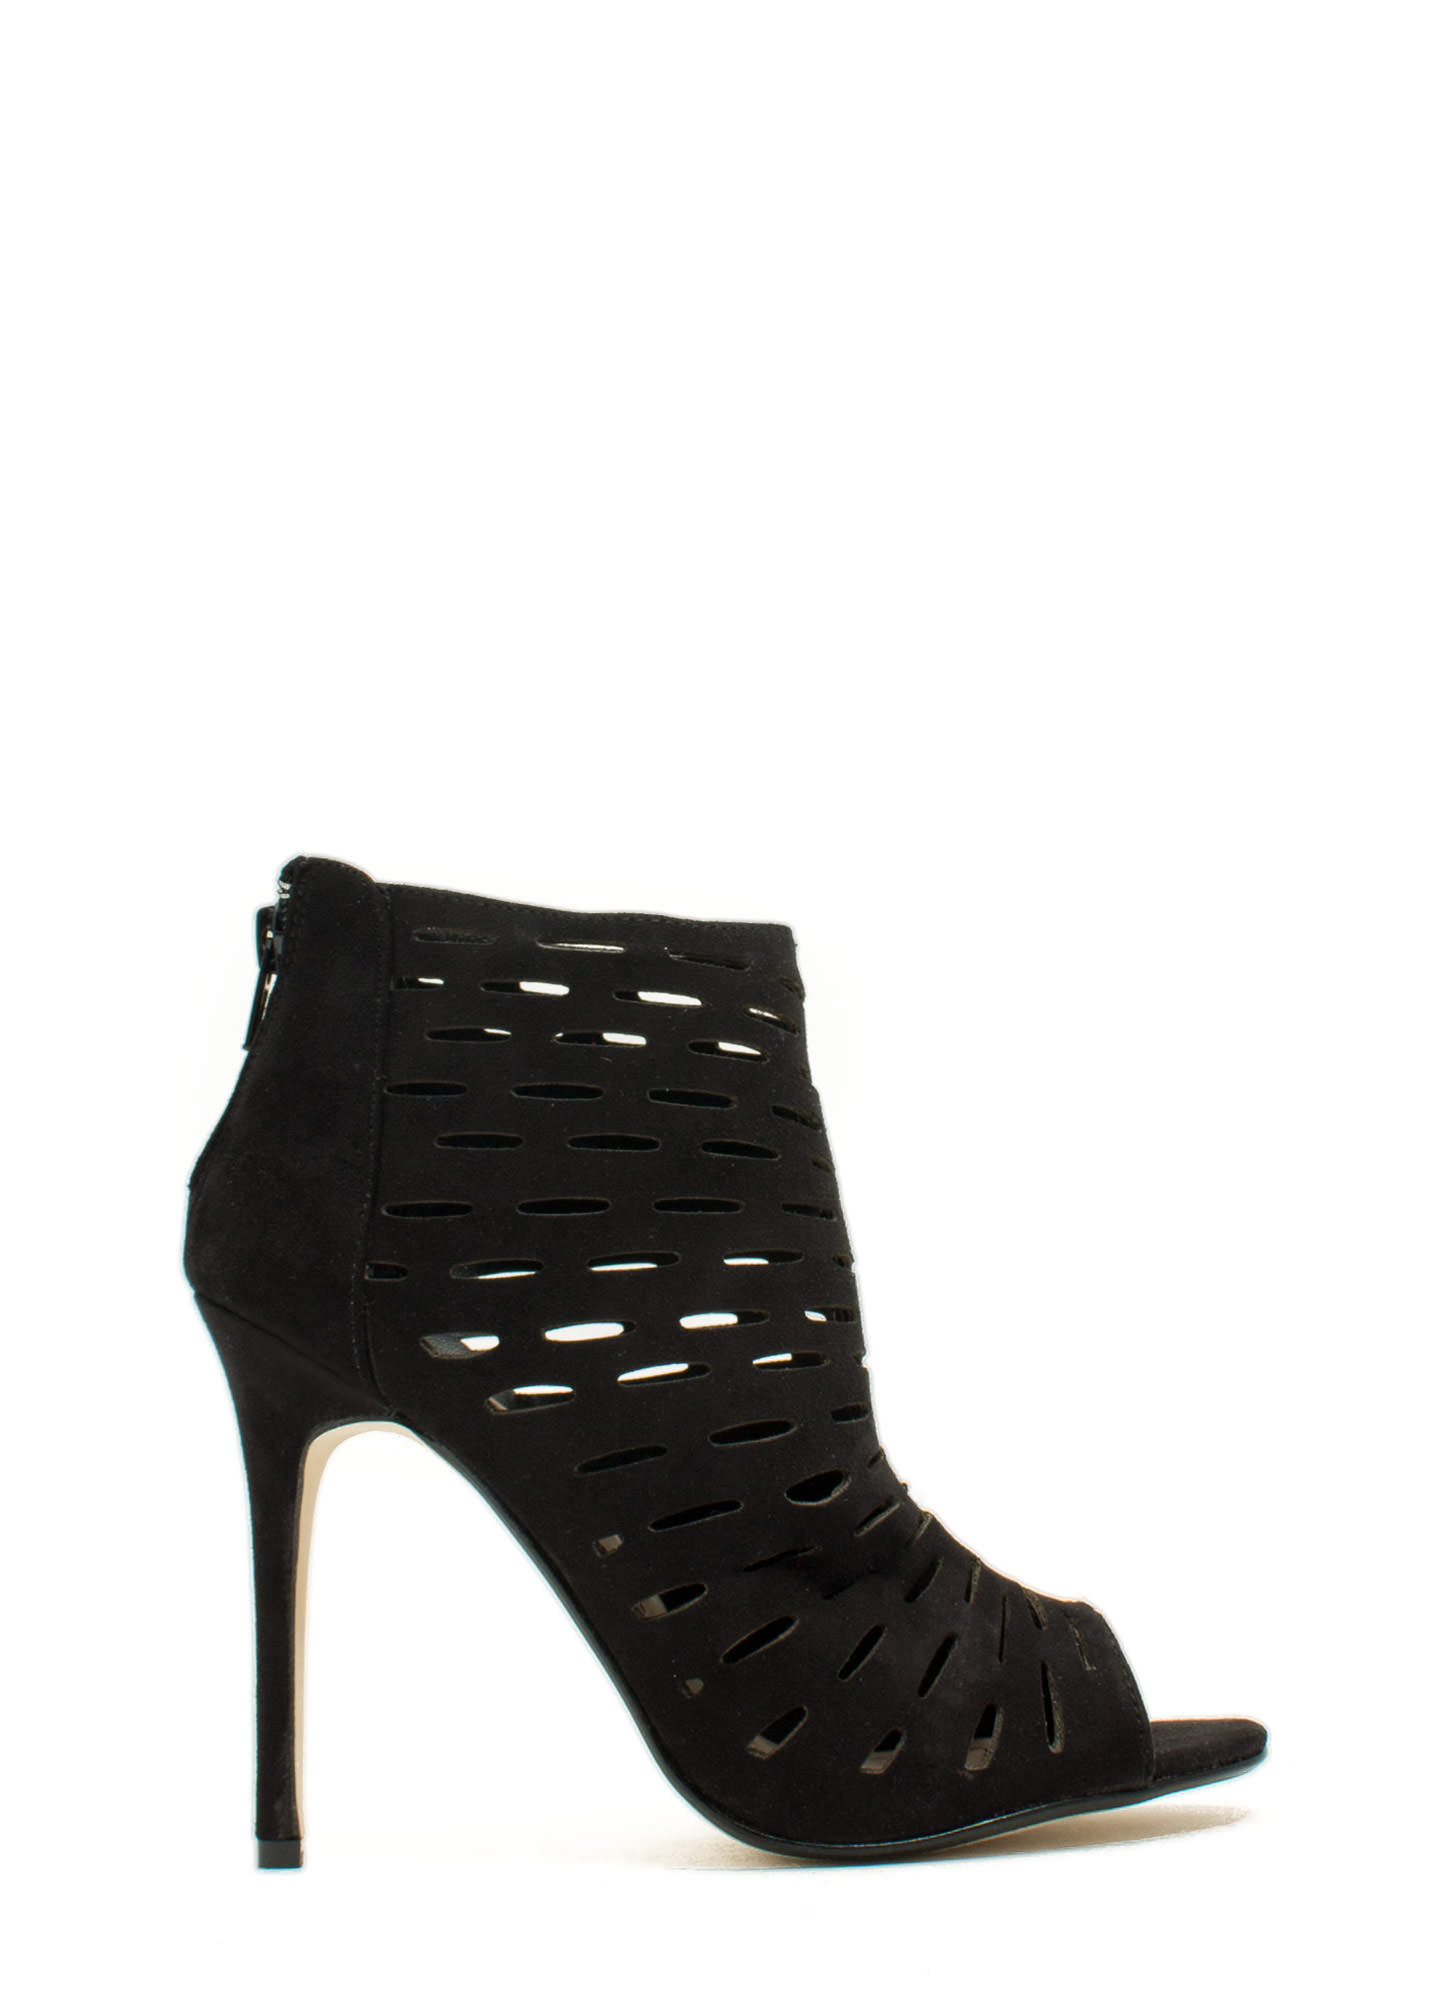 Slit Tight Bootie Heels BLACK